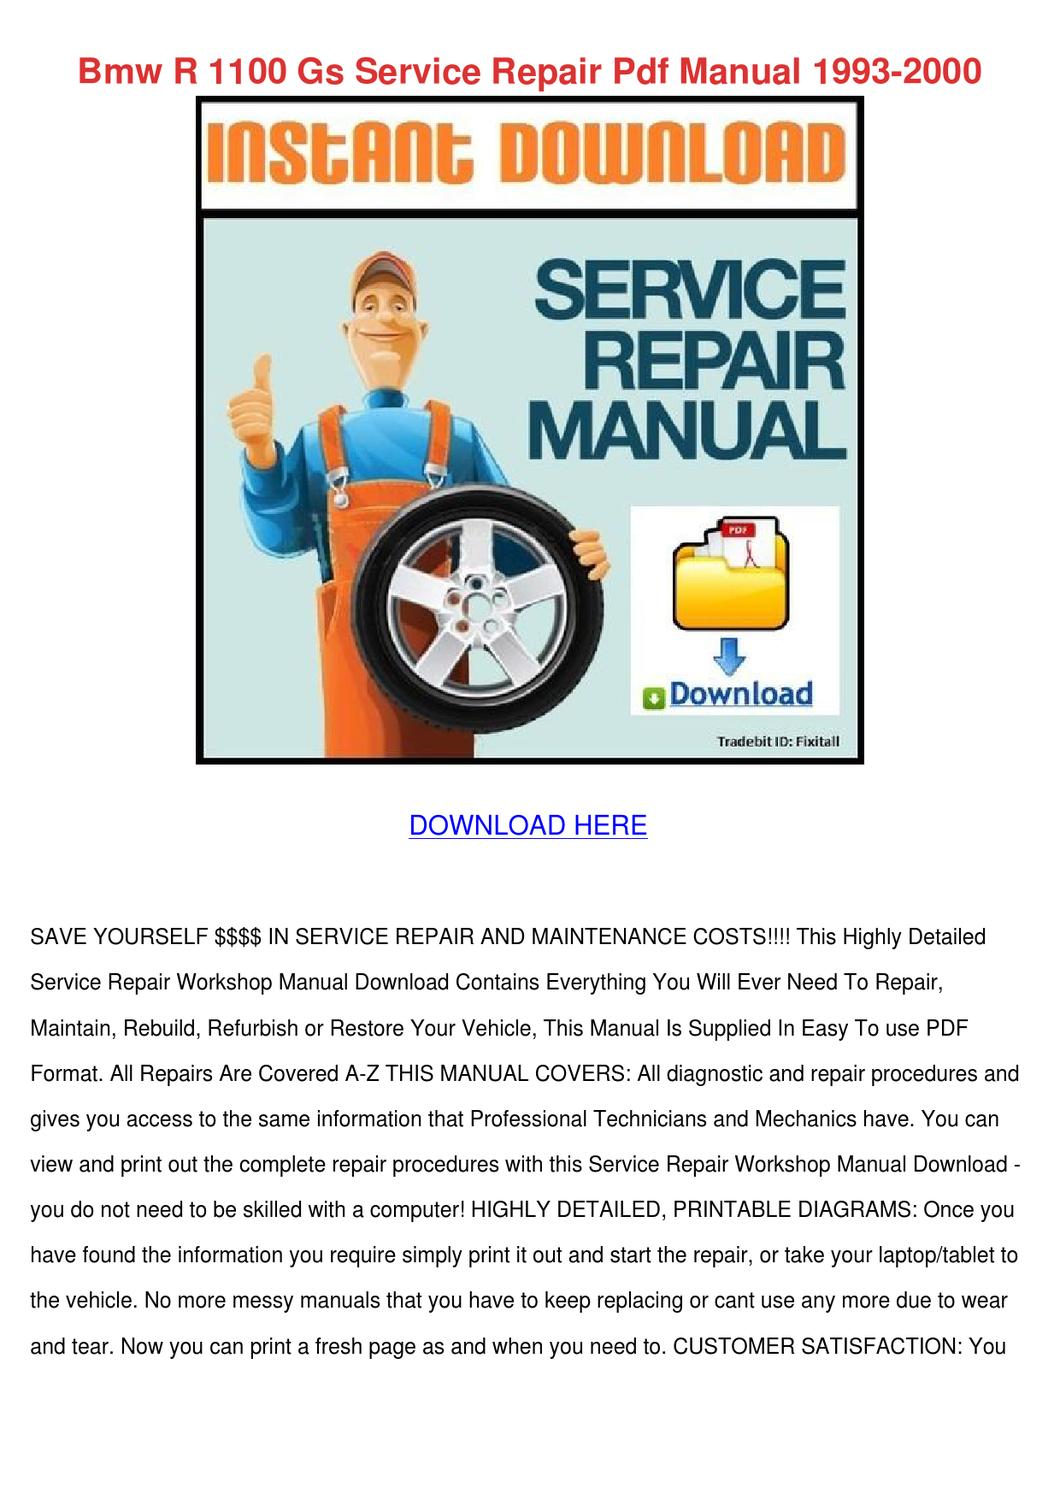 Bmw R 1100 Gs Service Repair Pdf Manual 1993 By Ulyssessosa Issuu 2000 R850c And R1200c Electrical System